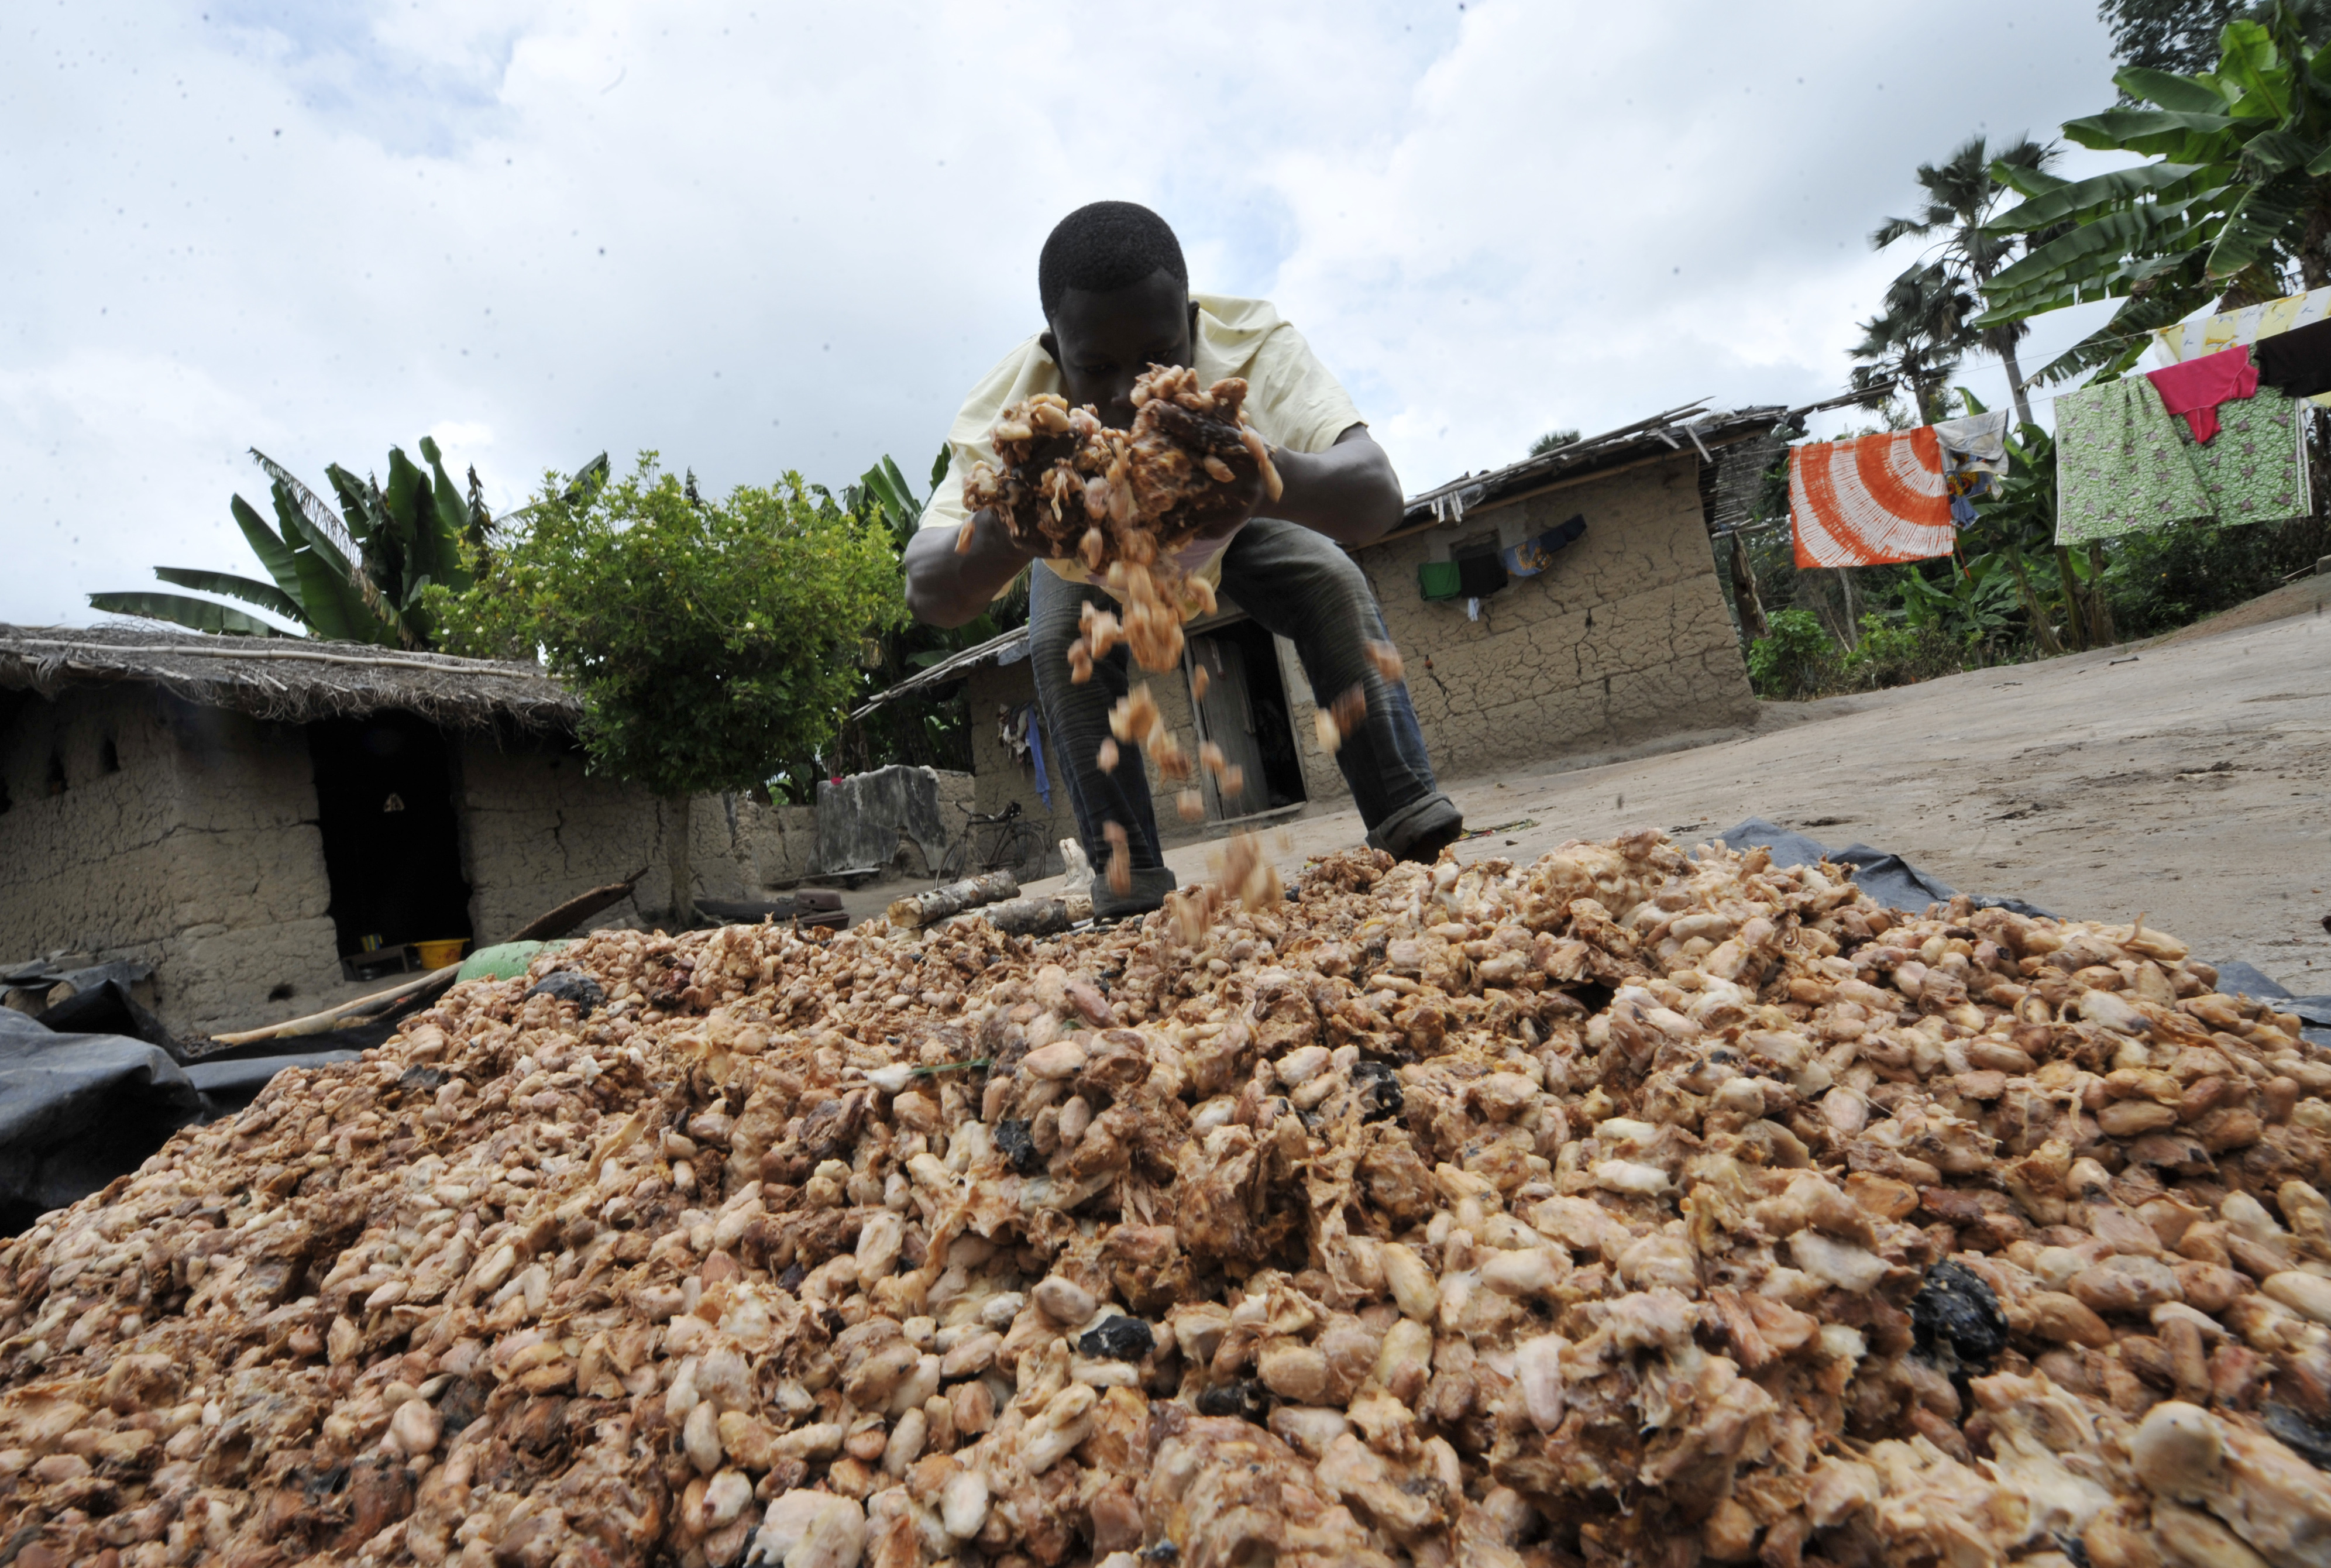 Nestle chocolate is produced from child labor, new report says ...